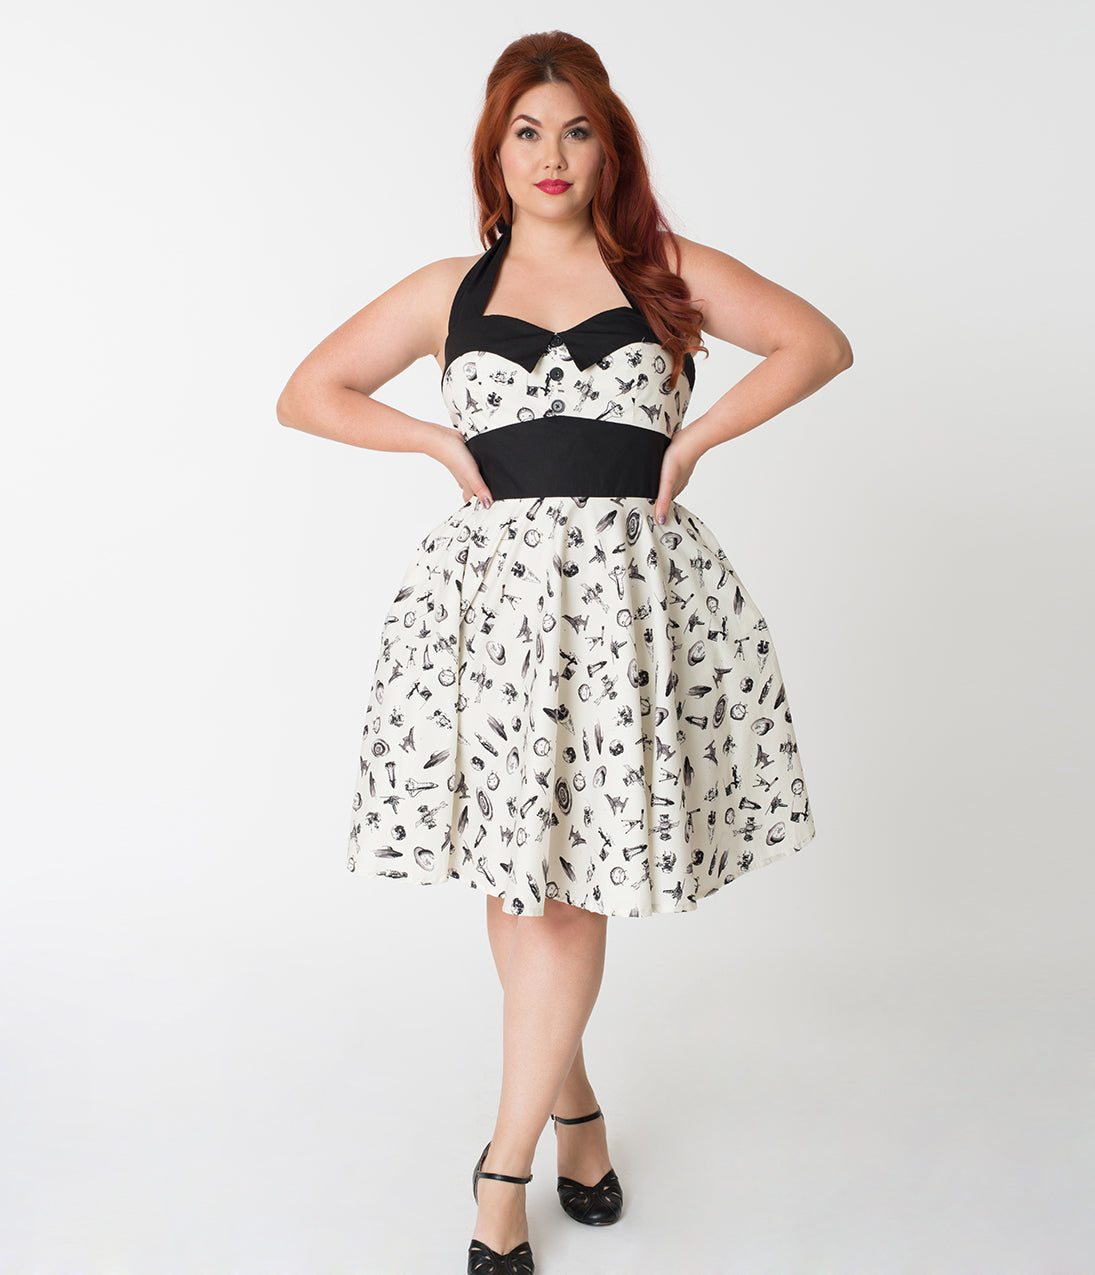 Rockabilly Dresses | Rockabilly Clothing | Viva Las Vegas